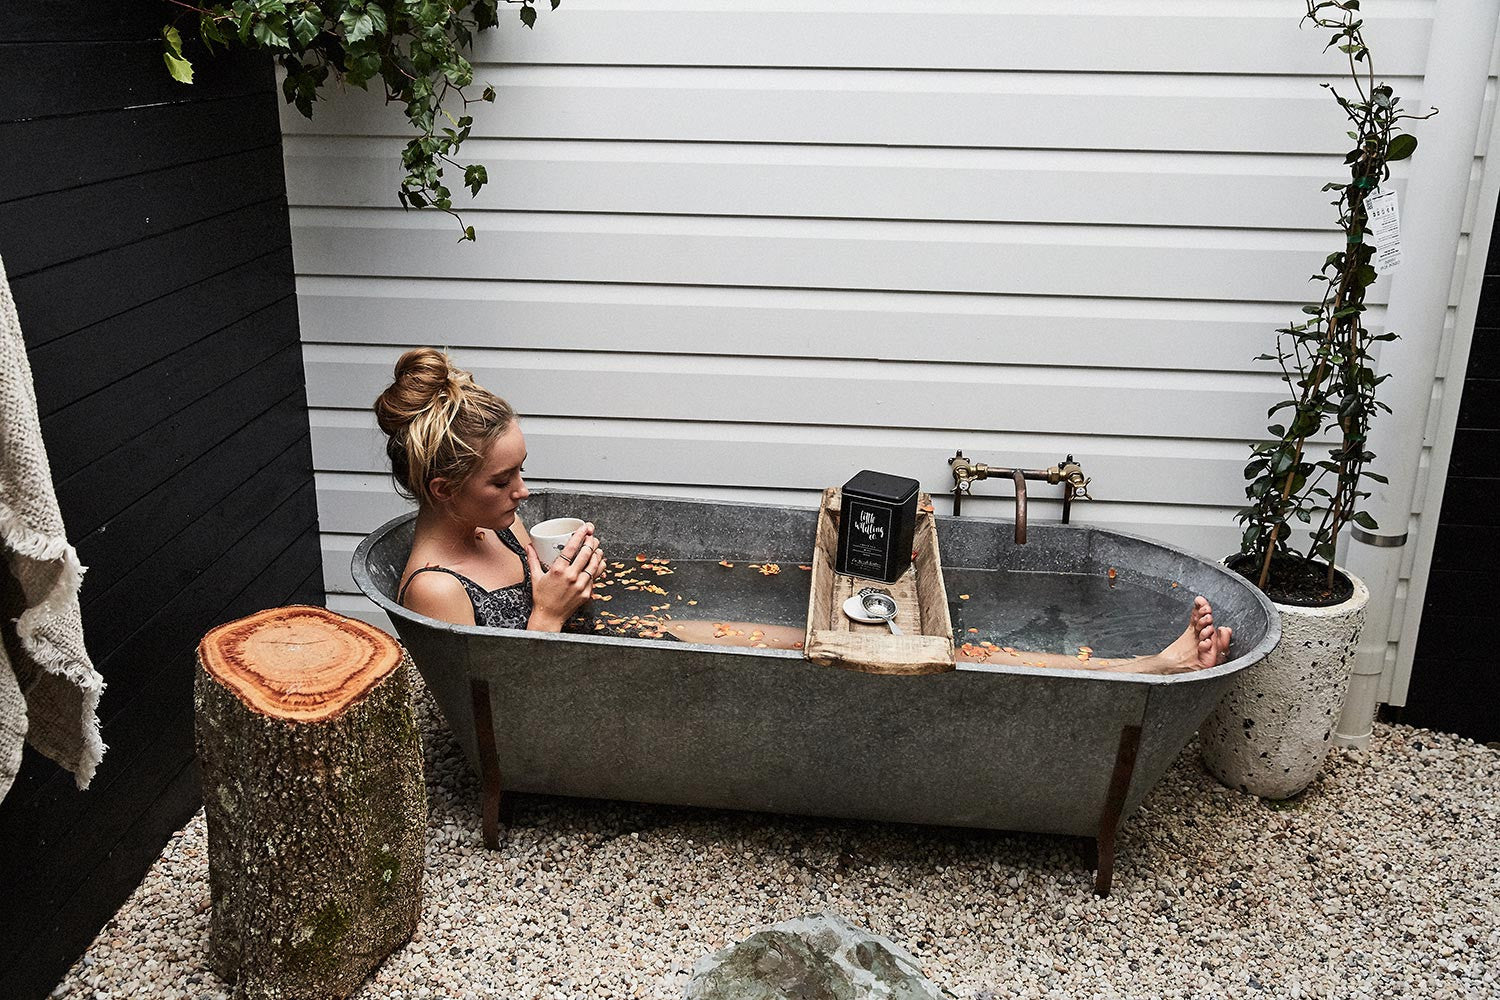 Woman in modern outside tub drinking tea